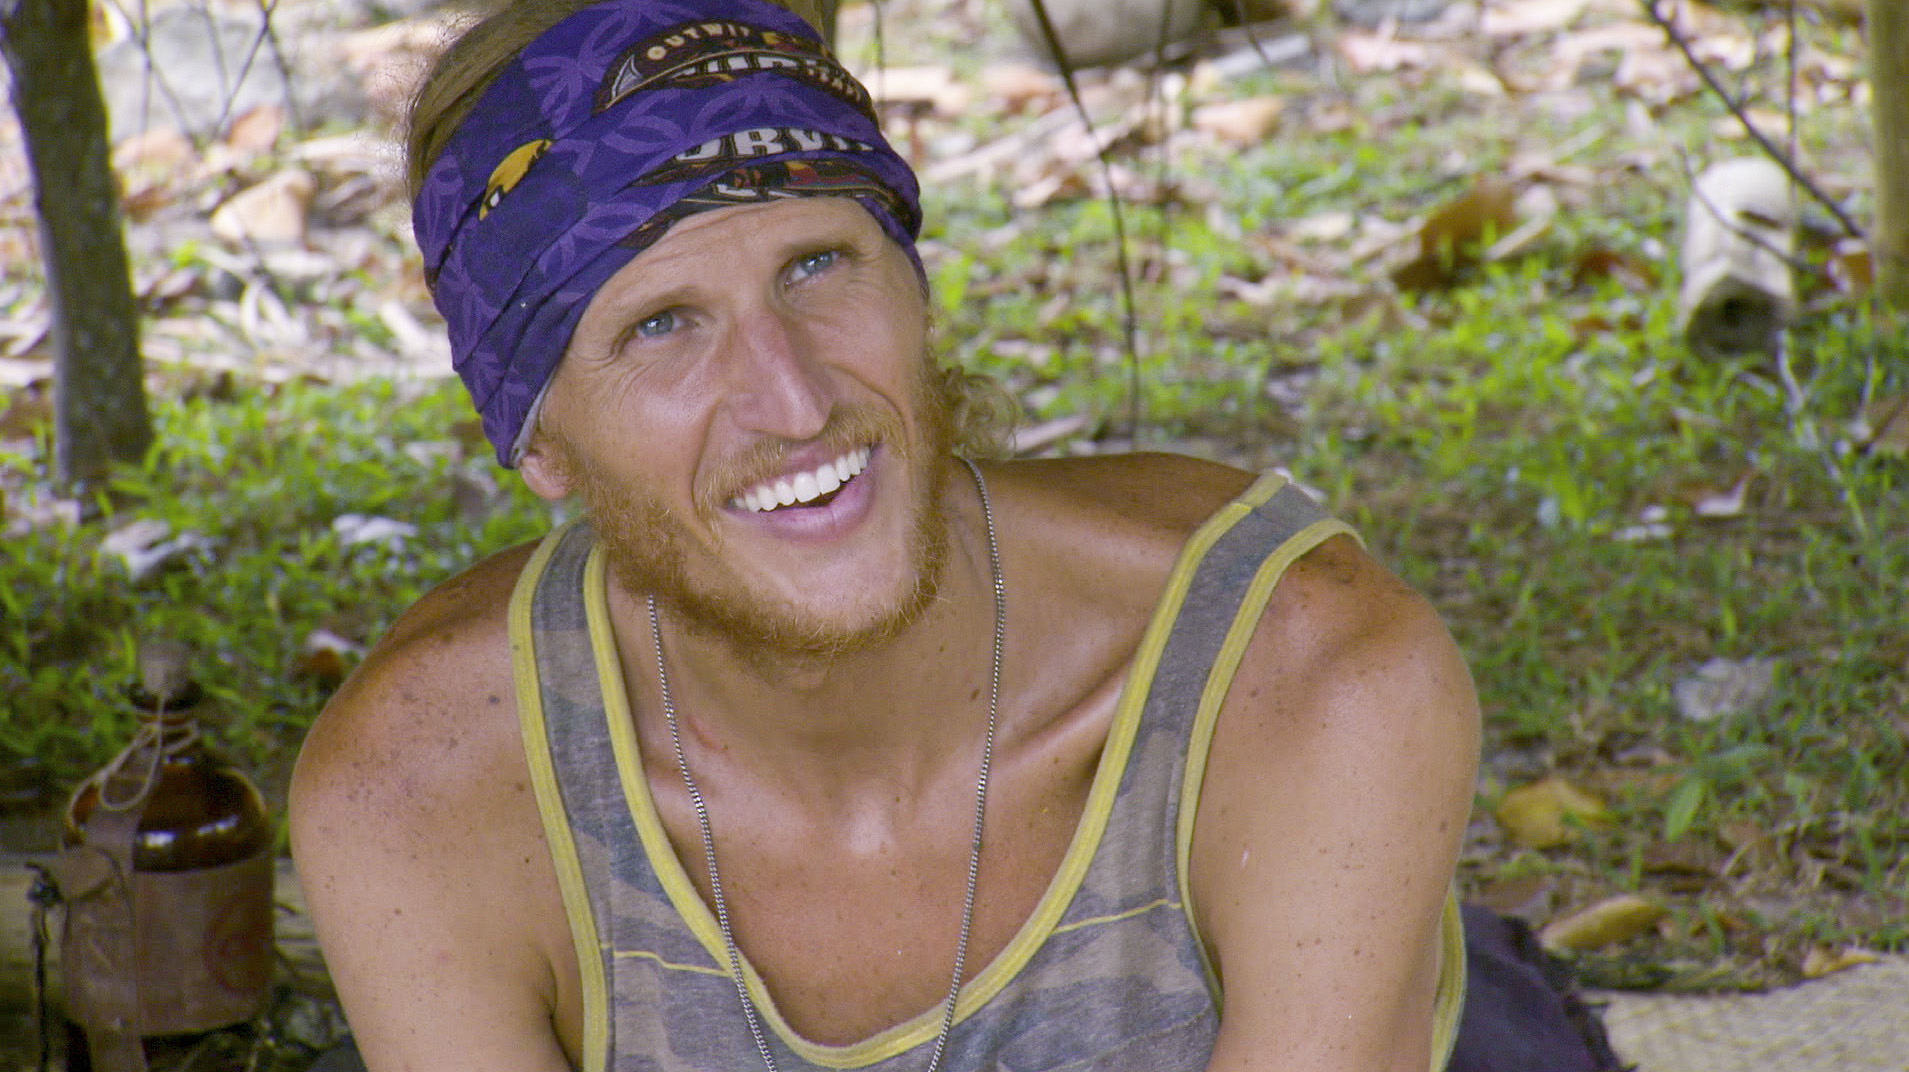 Tyson in Season 27 Episode 13